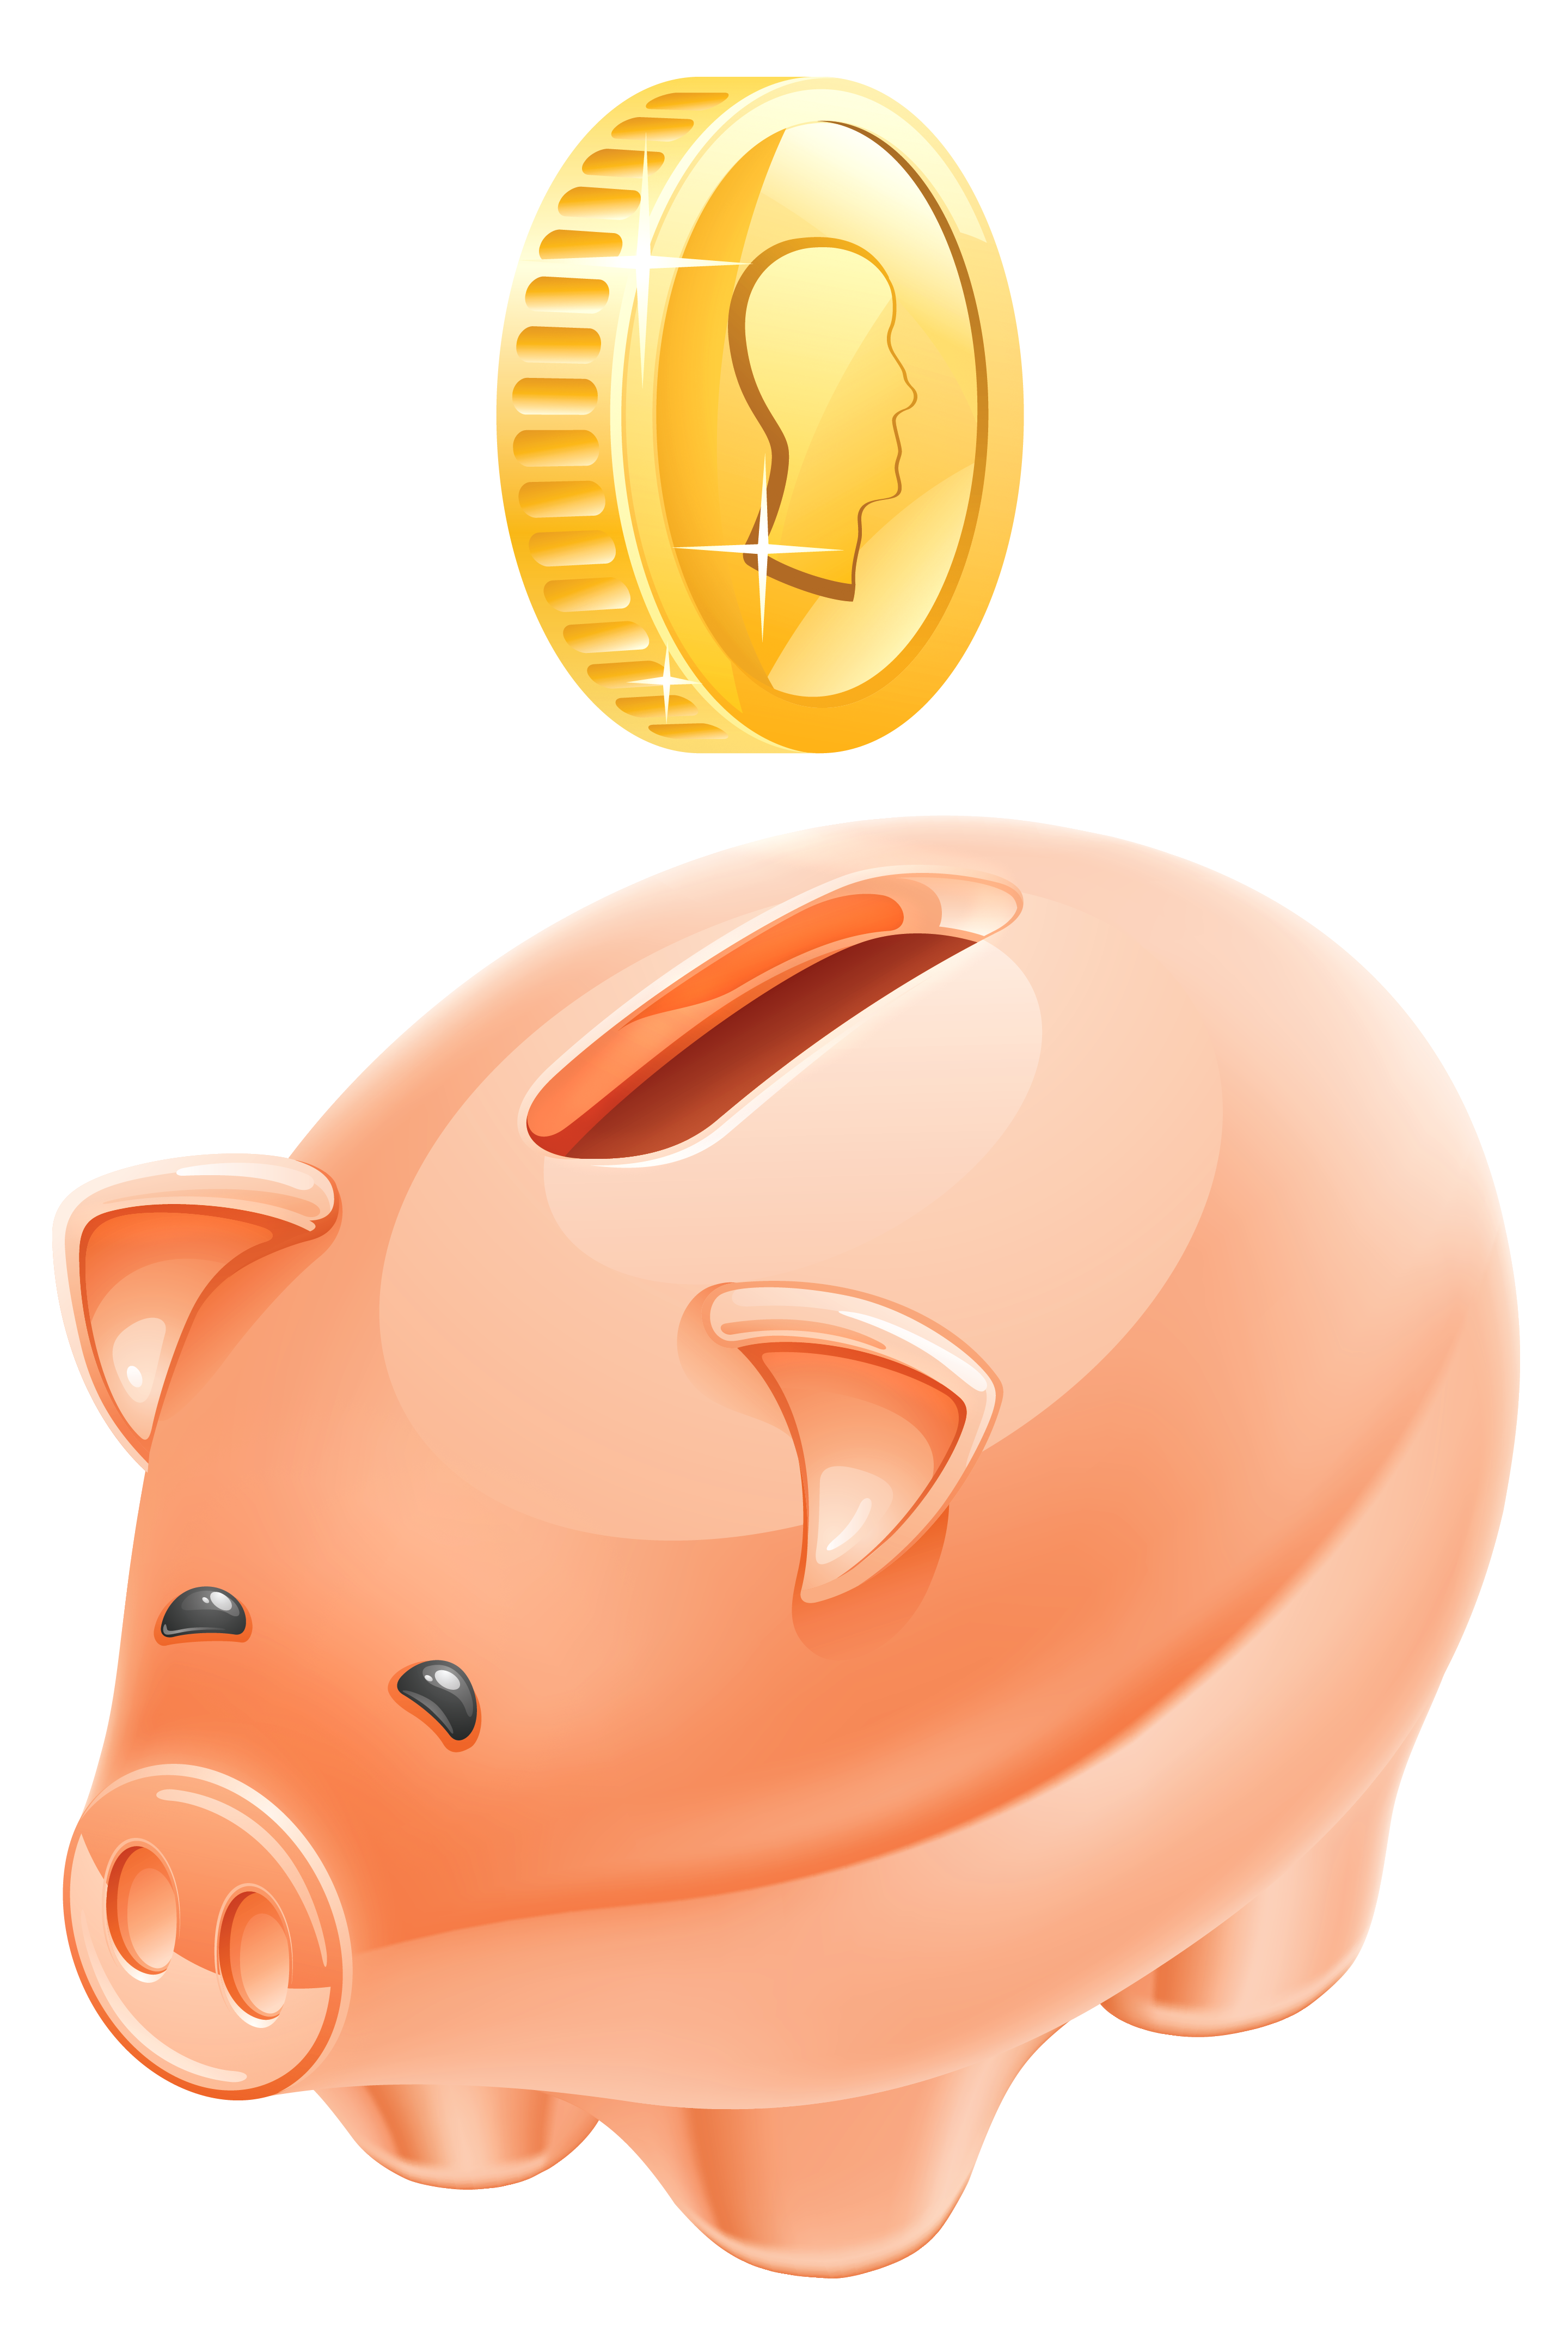 Bank clipart transparent background. Piggy png picture gallery